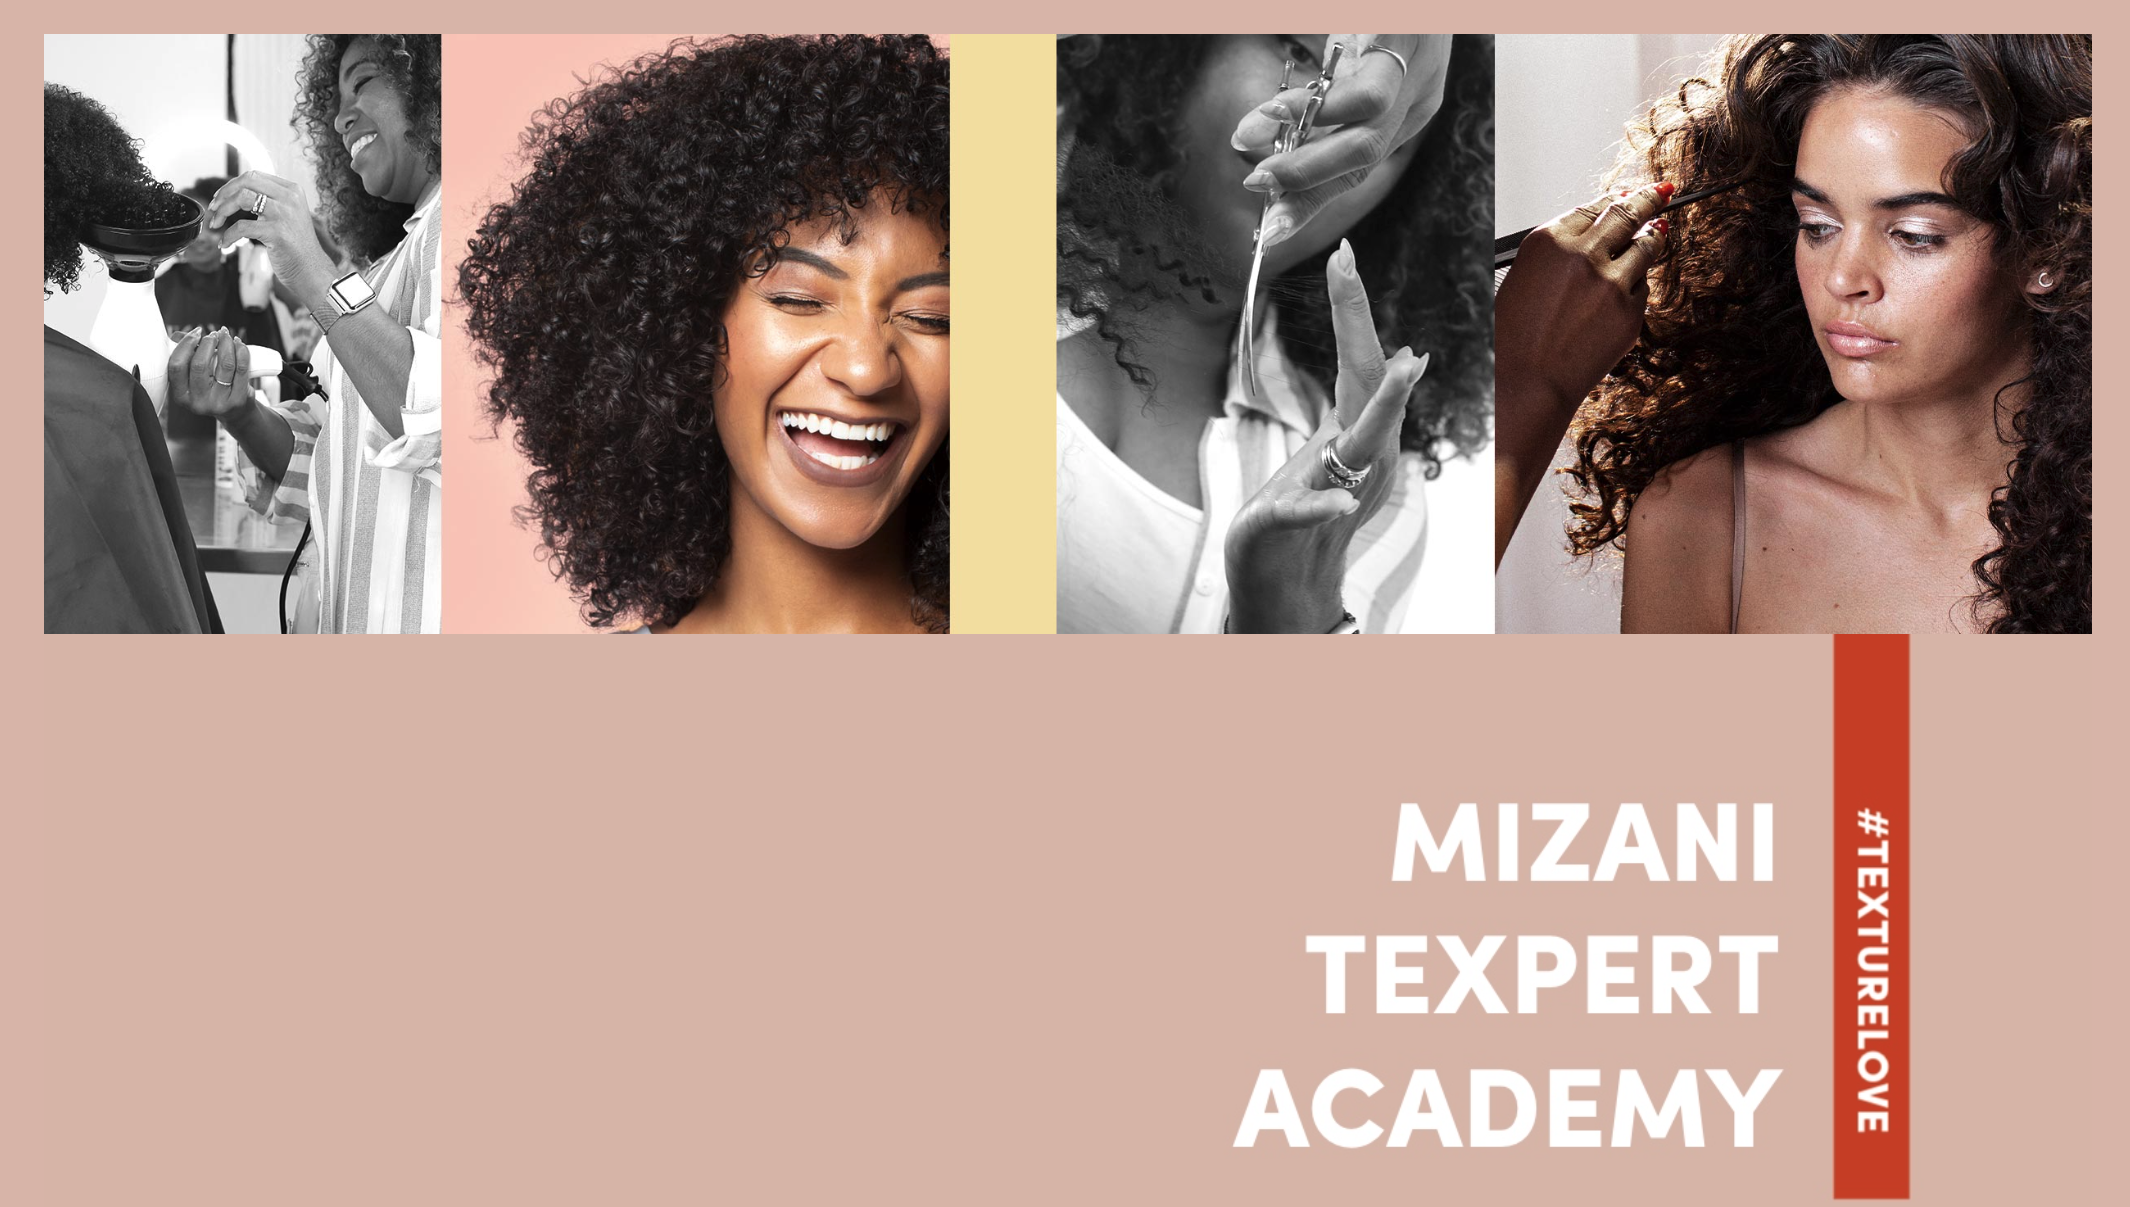 Become a Texpert: Mizani Launches Texpert Academy